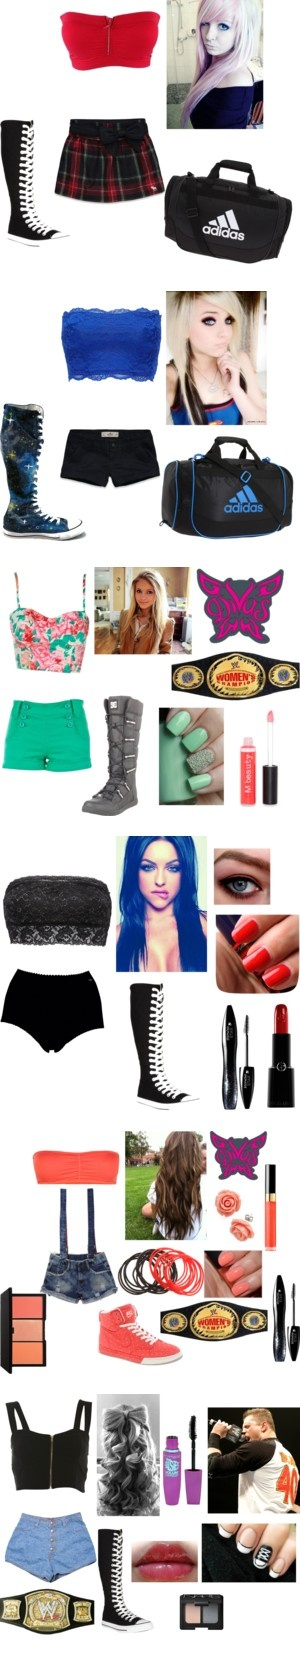 """My WWE outfit :)"" by samacenafan ❤ liked on Polyvore"